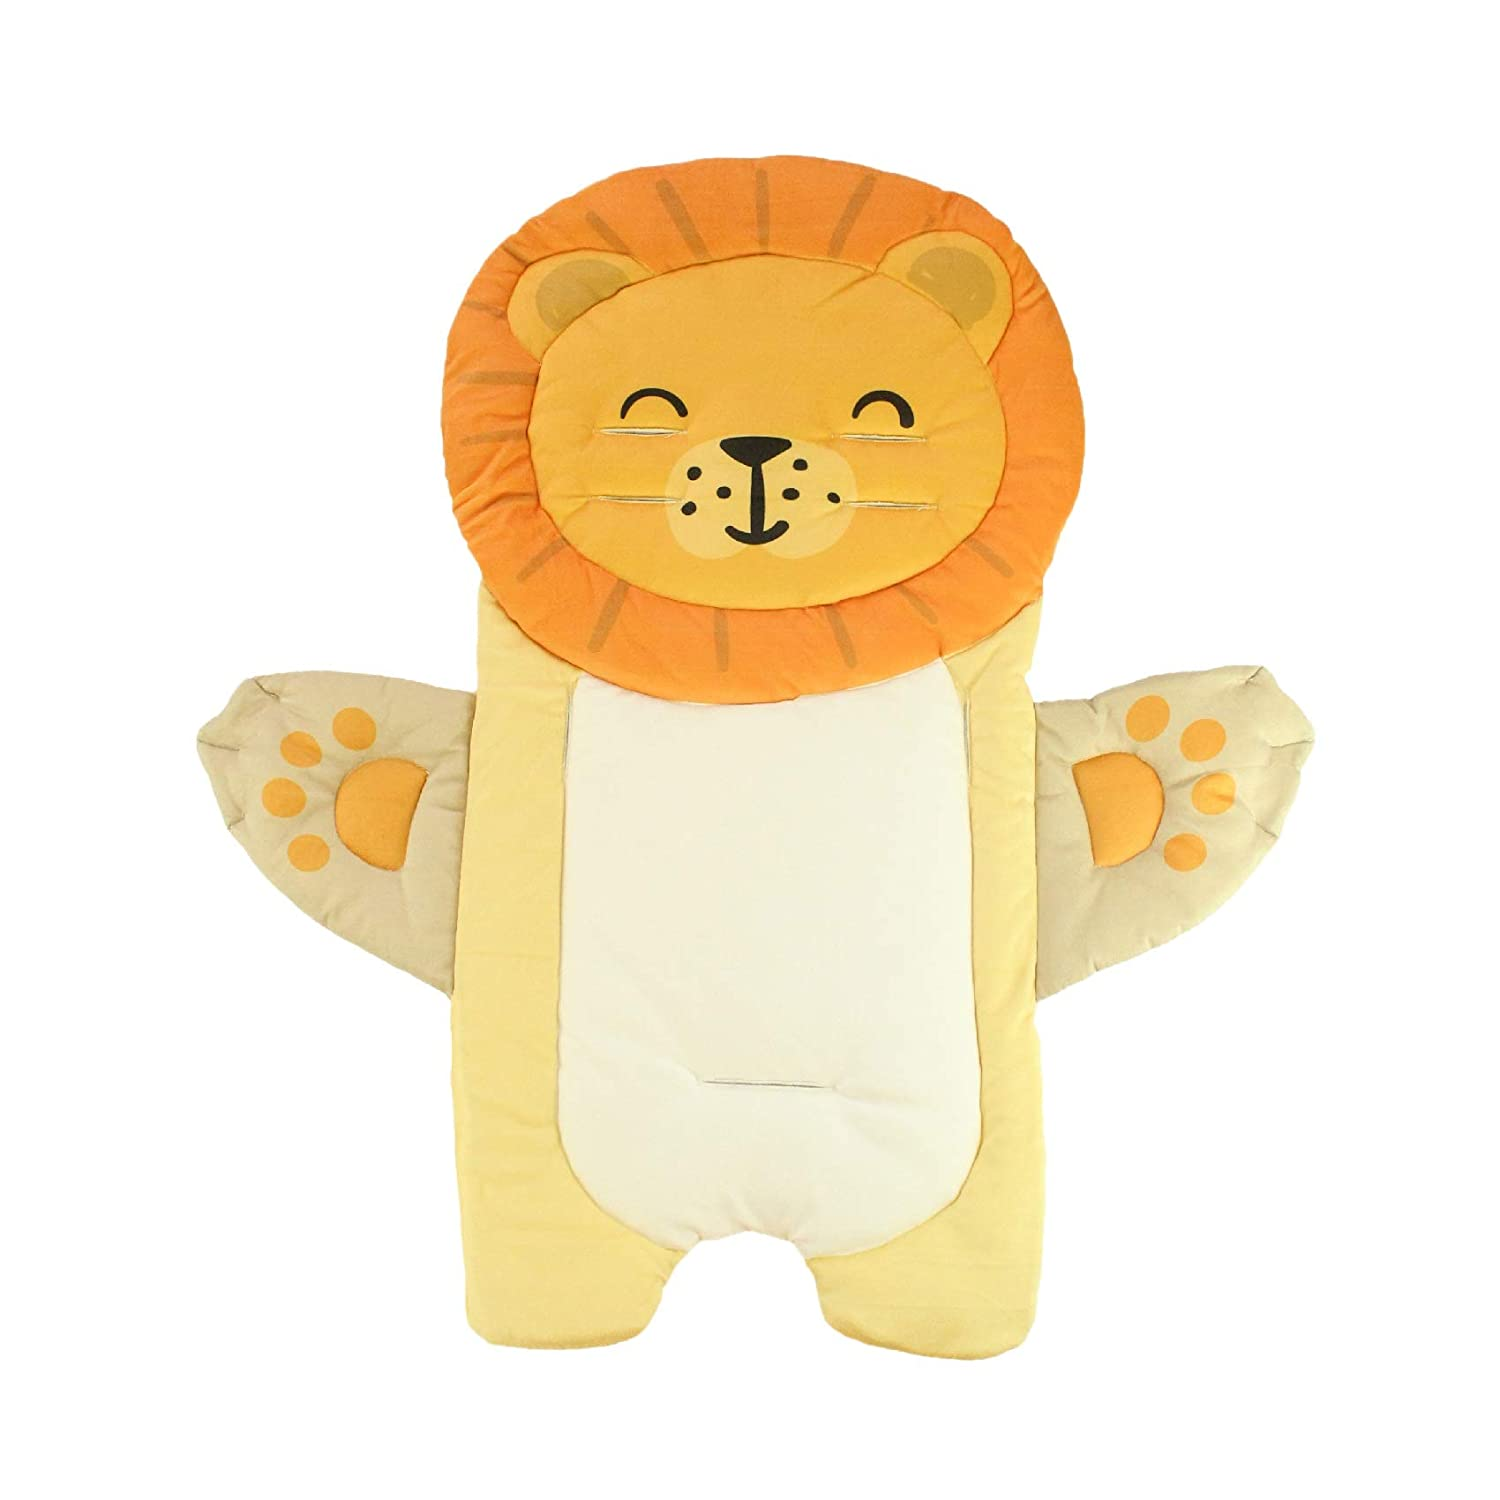 Nifyto Baby Stroller Cushion Pad, Light Infant/Baby Stroller Liner,Cotton Breathable(Lion)